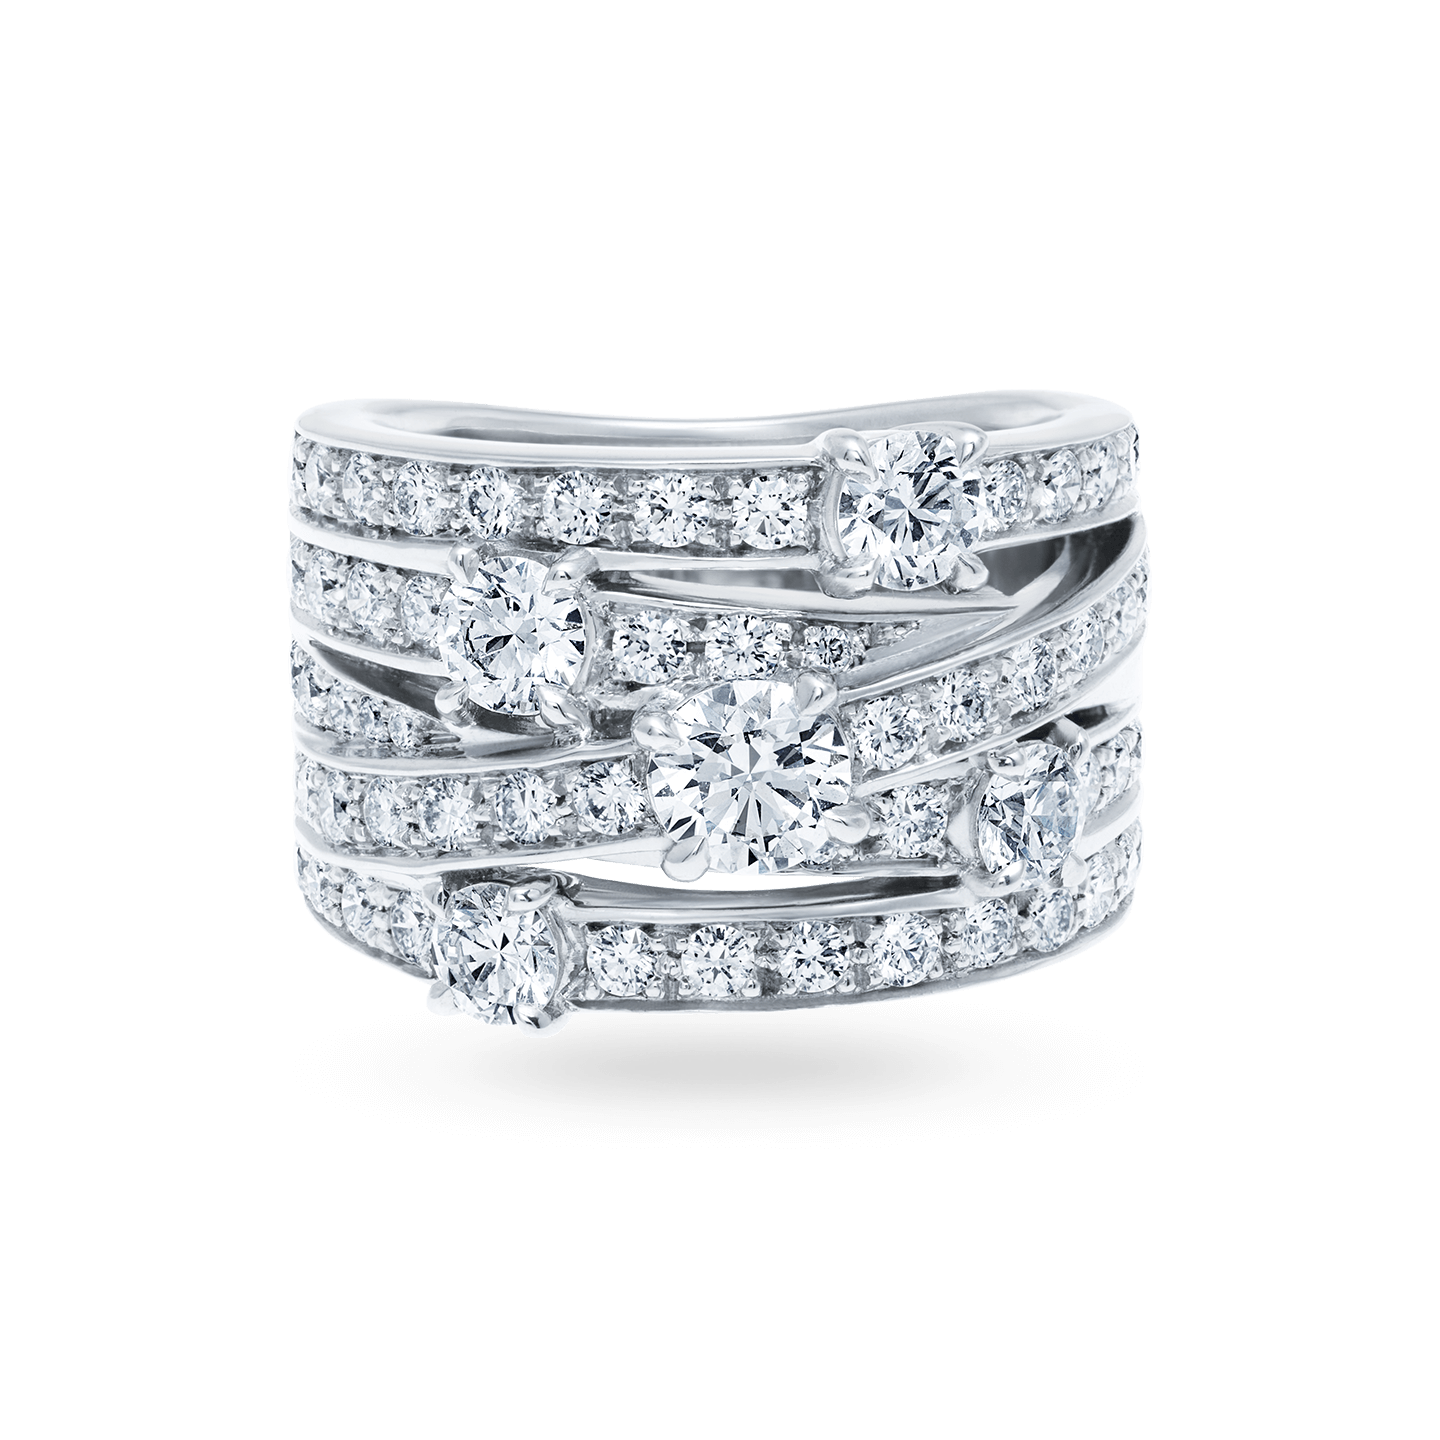 Crossover Diamond Ring, Product Image 1